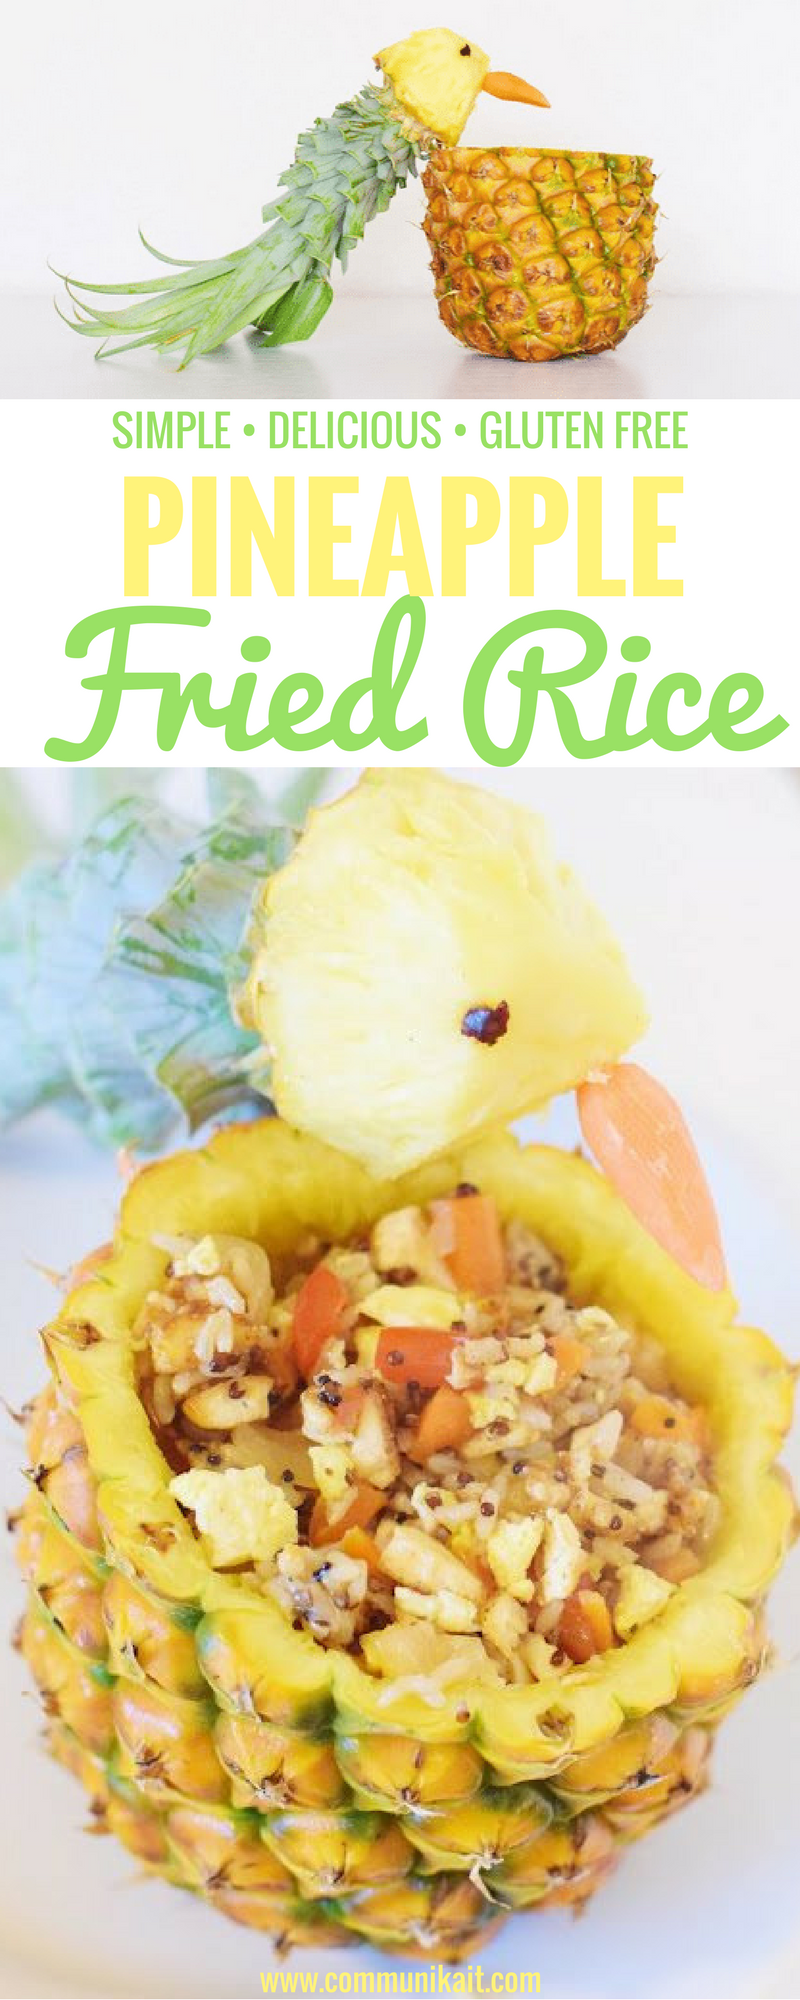 Best ever pineapple fried rice communikait best ever pineapple fried rice gluten free fried rice vegetarian fried rice easy ccuart Image collections